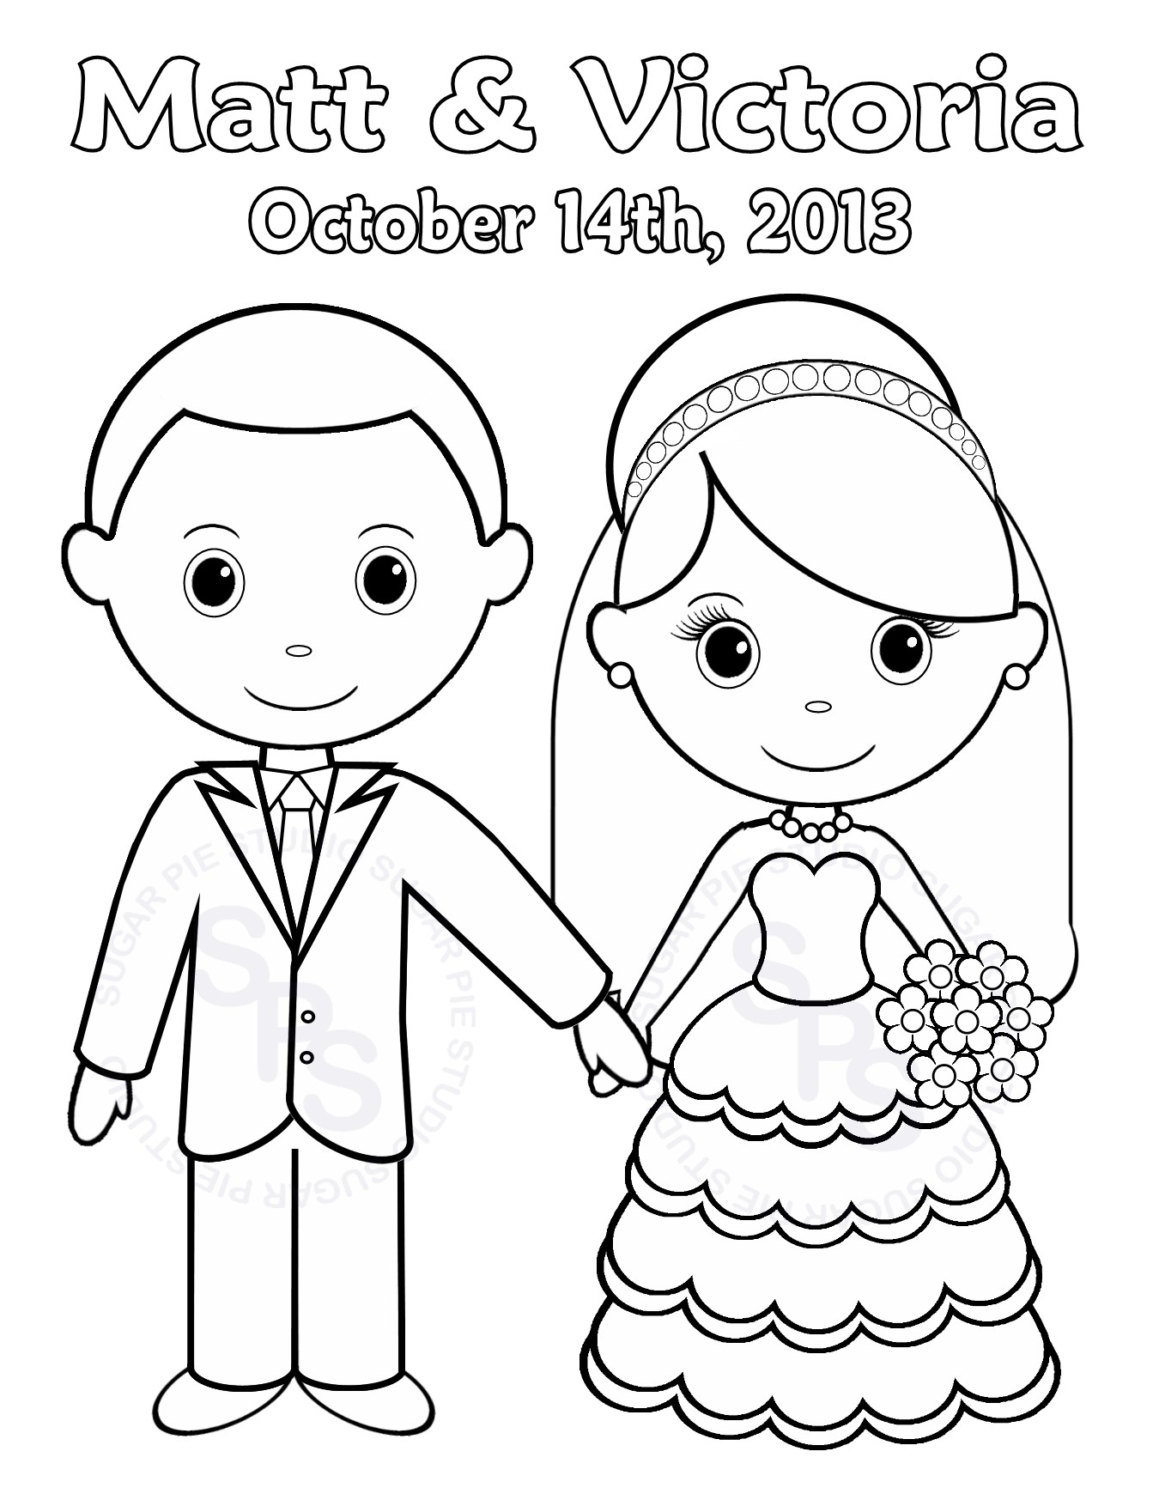 Coloring Pages : Coloring Pages Personalized To Print For Kids Free - Free Printable Personalized Children's Books